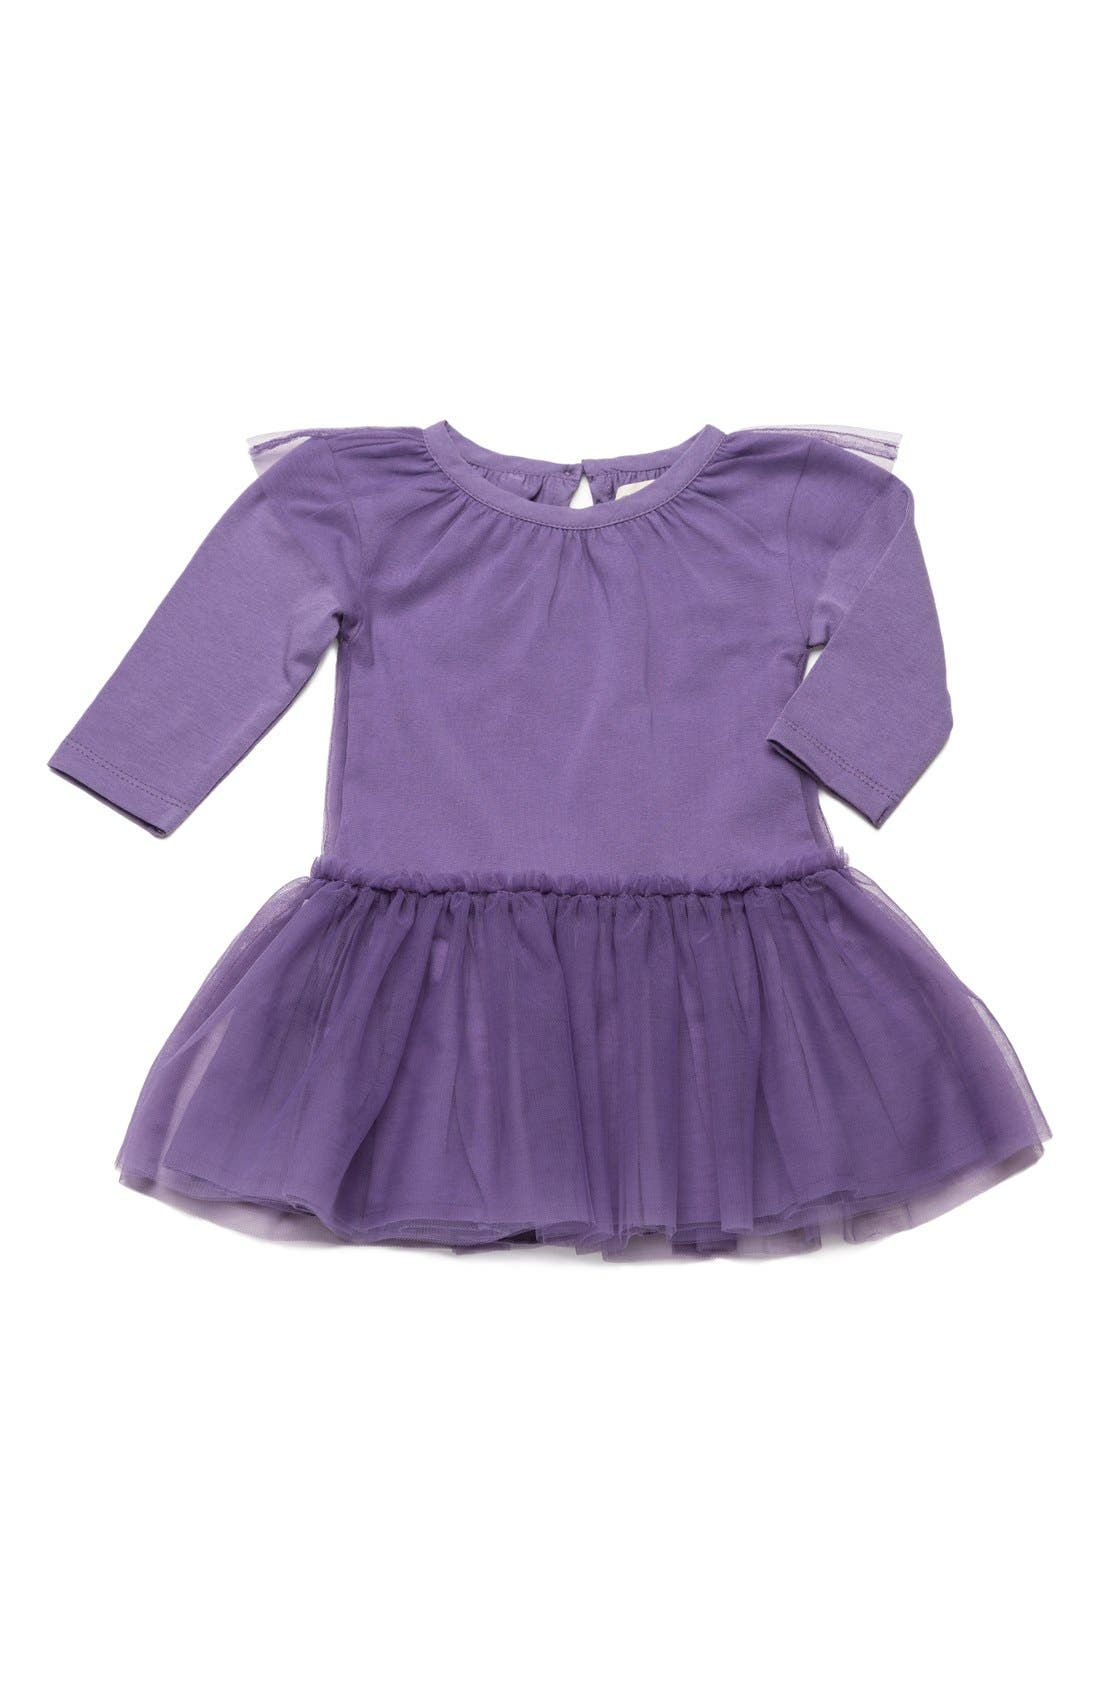 Little Belle Tulle Skirt Dress,                         Main,                         color, 500